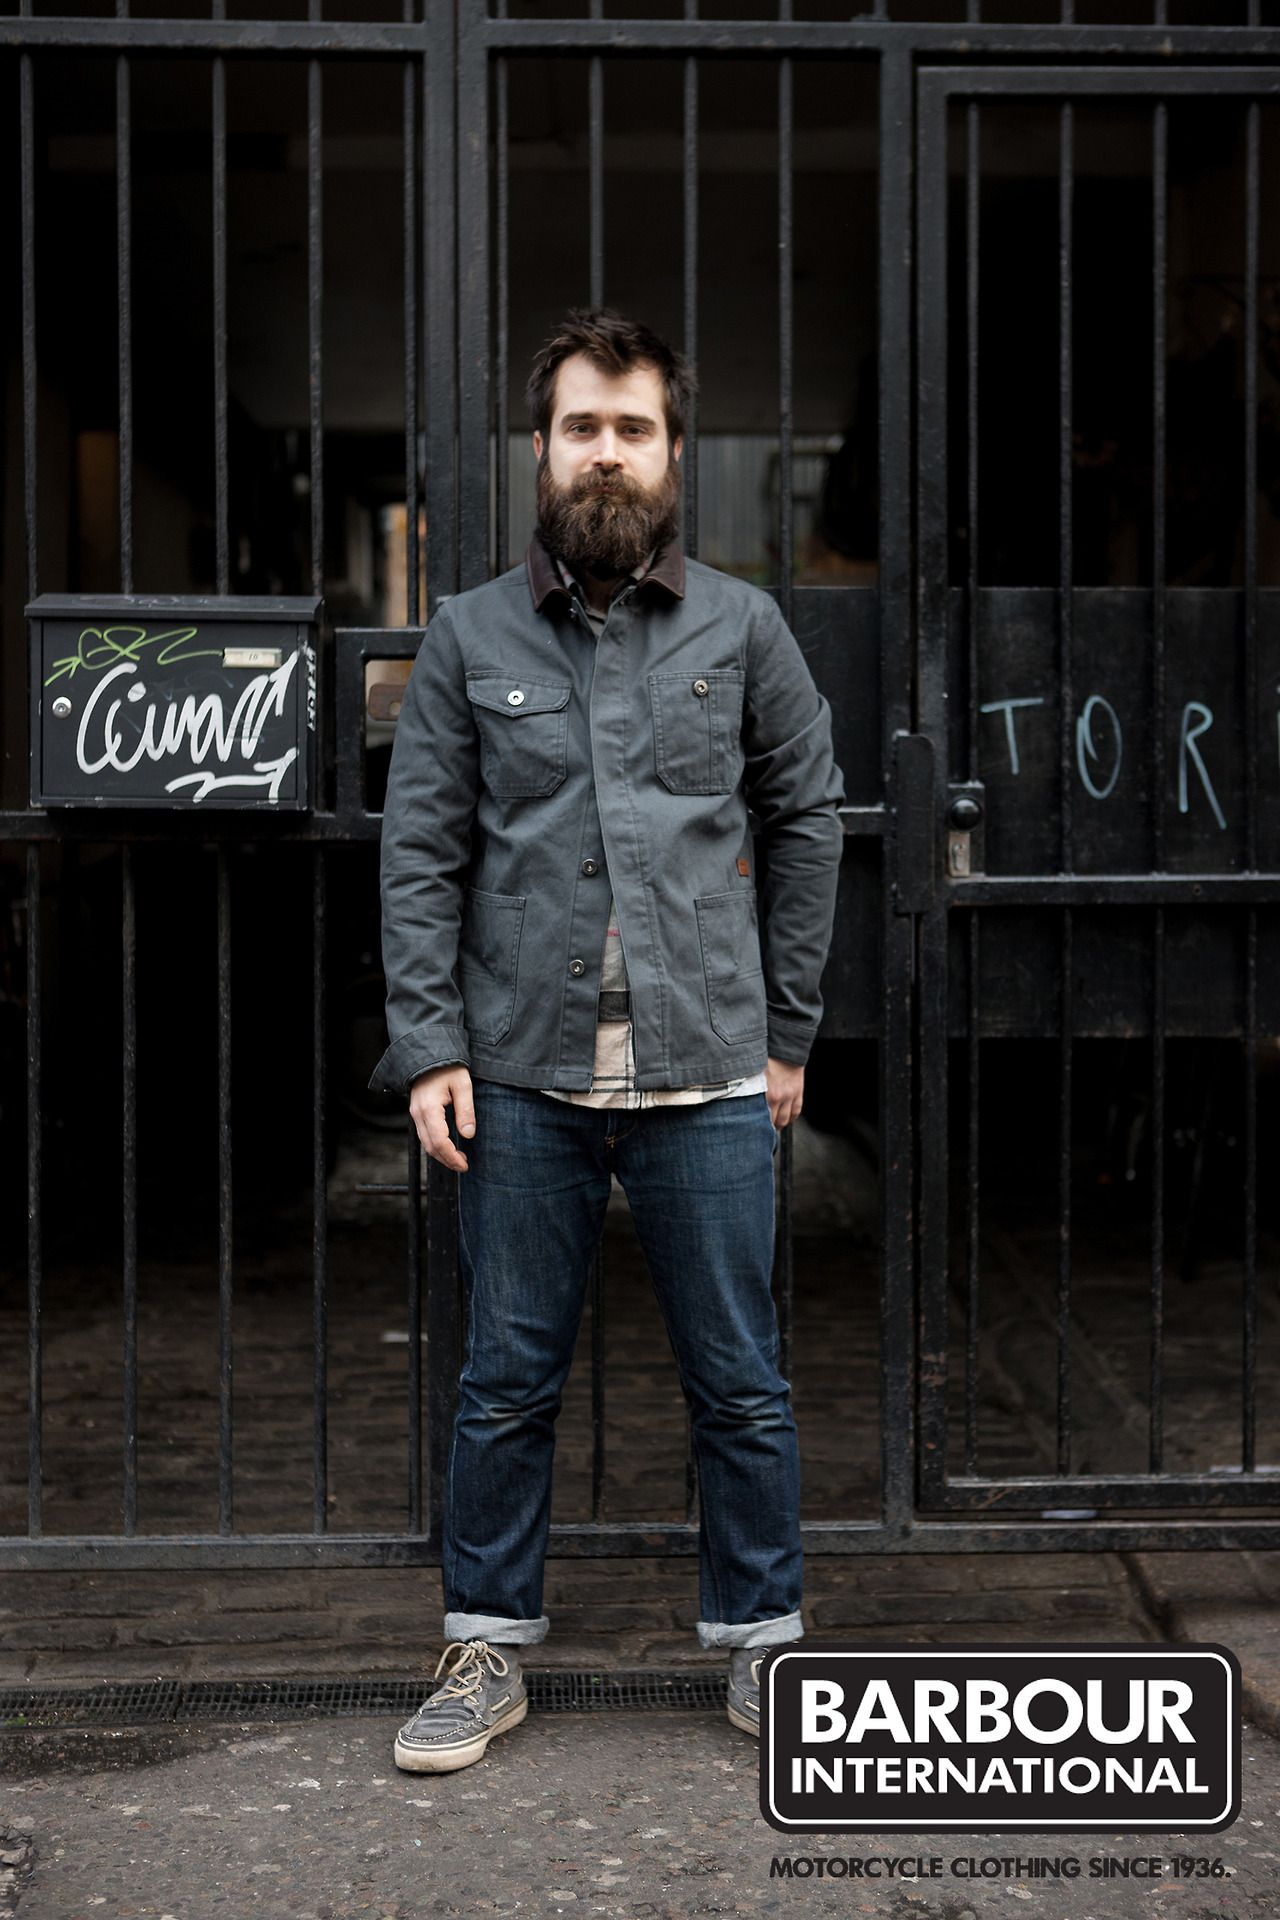 Street style haircut men i want a barbour jacket  man style lll  pinterest  barbour man